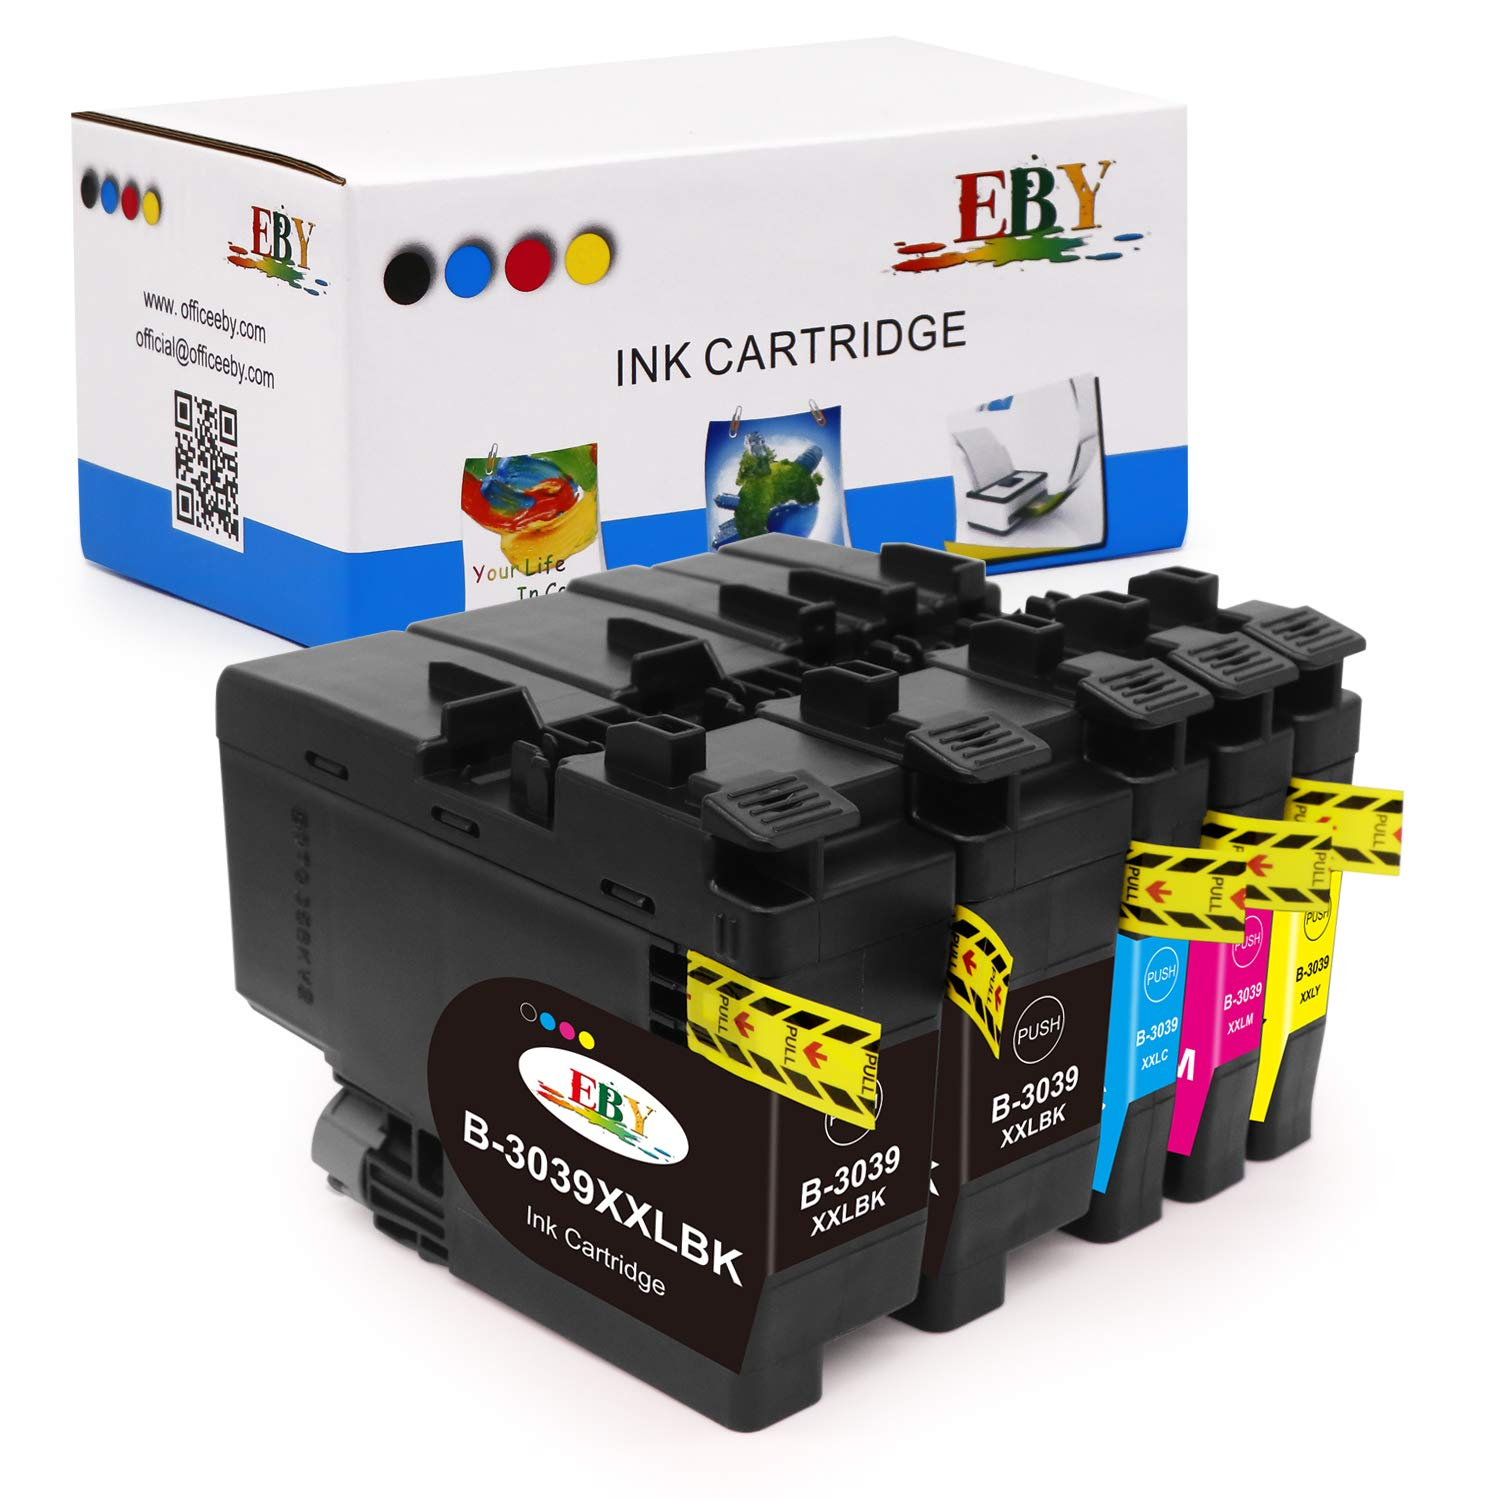 EBY Compatible Ink Cartridge Replacement for Brother LC3037 LC3039 for Brother MFC-J5845DW MFC-J5845DW XL MFC-J5945DW MFC-J6545DW MFC-J6545DW XL MFC-J6945DW (2 Black,1 Cyan,1 Magenta,1 Yellow)